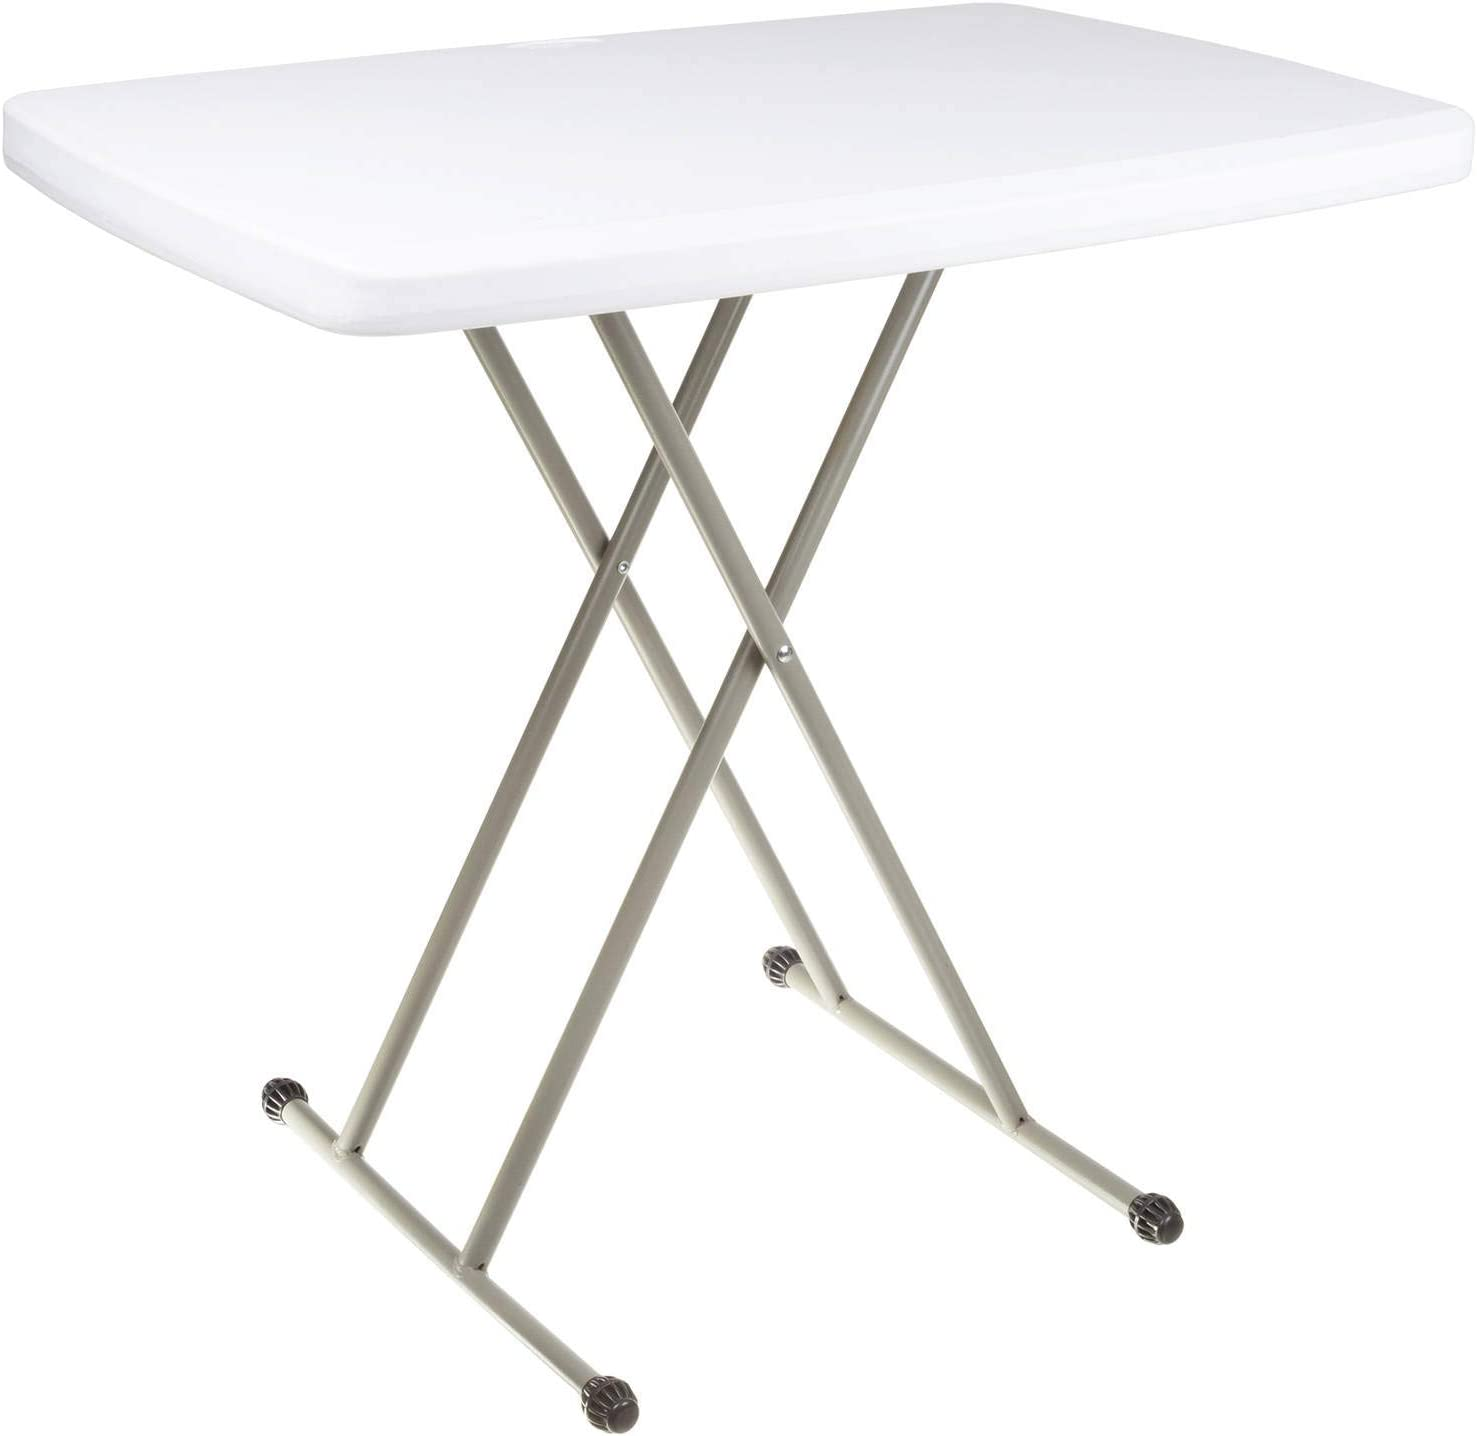 Everyday Home Folding Table, Foldable Table and TV Tray, 30 x 20 x 28 (Great for Laptops) 4 Pack